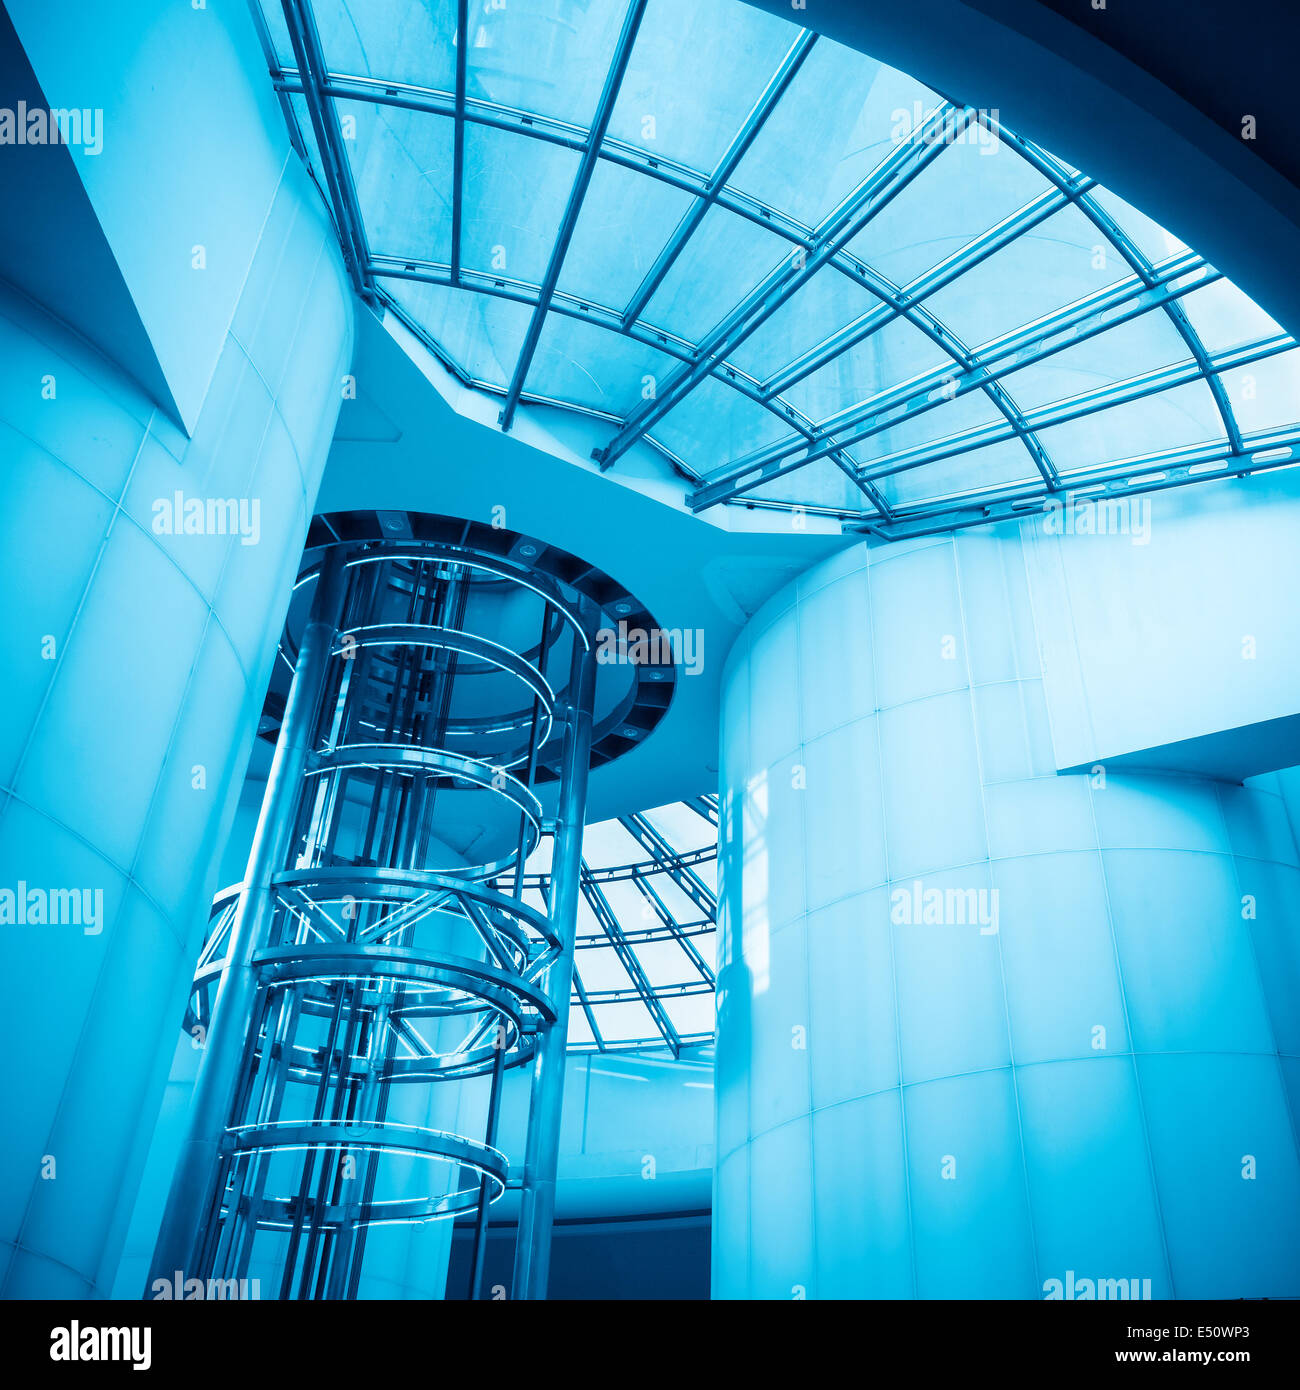 elevator in the modern tower - Stock Image